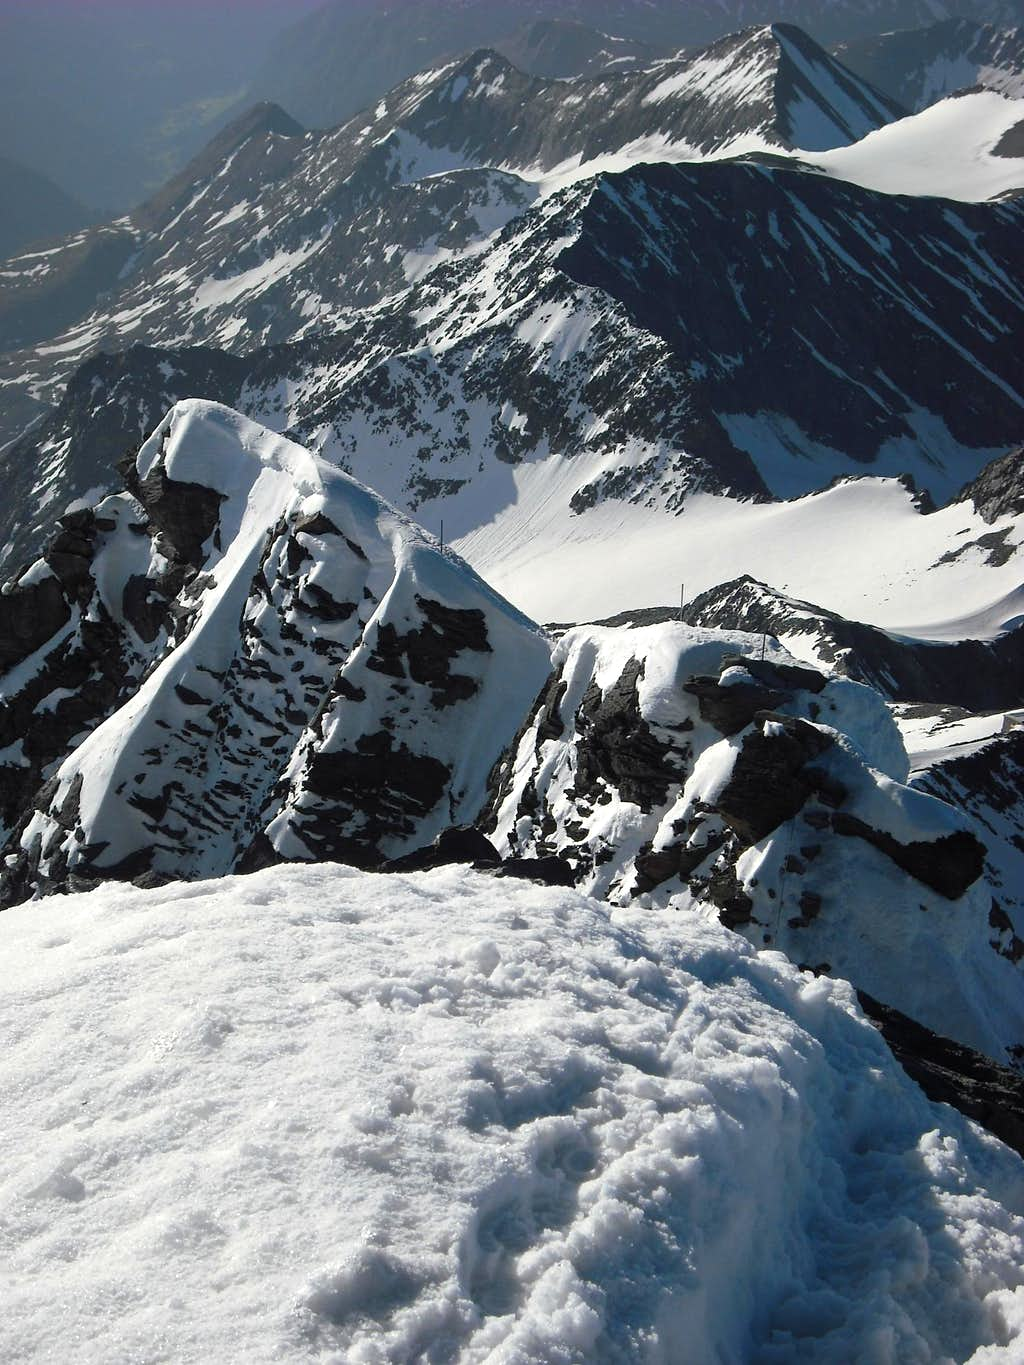 View from Grossglockner summit to Kleinglockner ridge